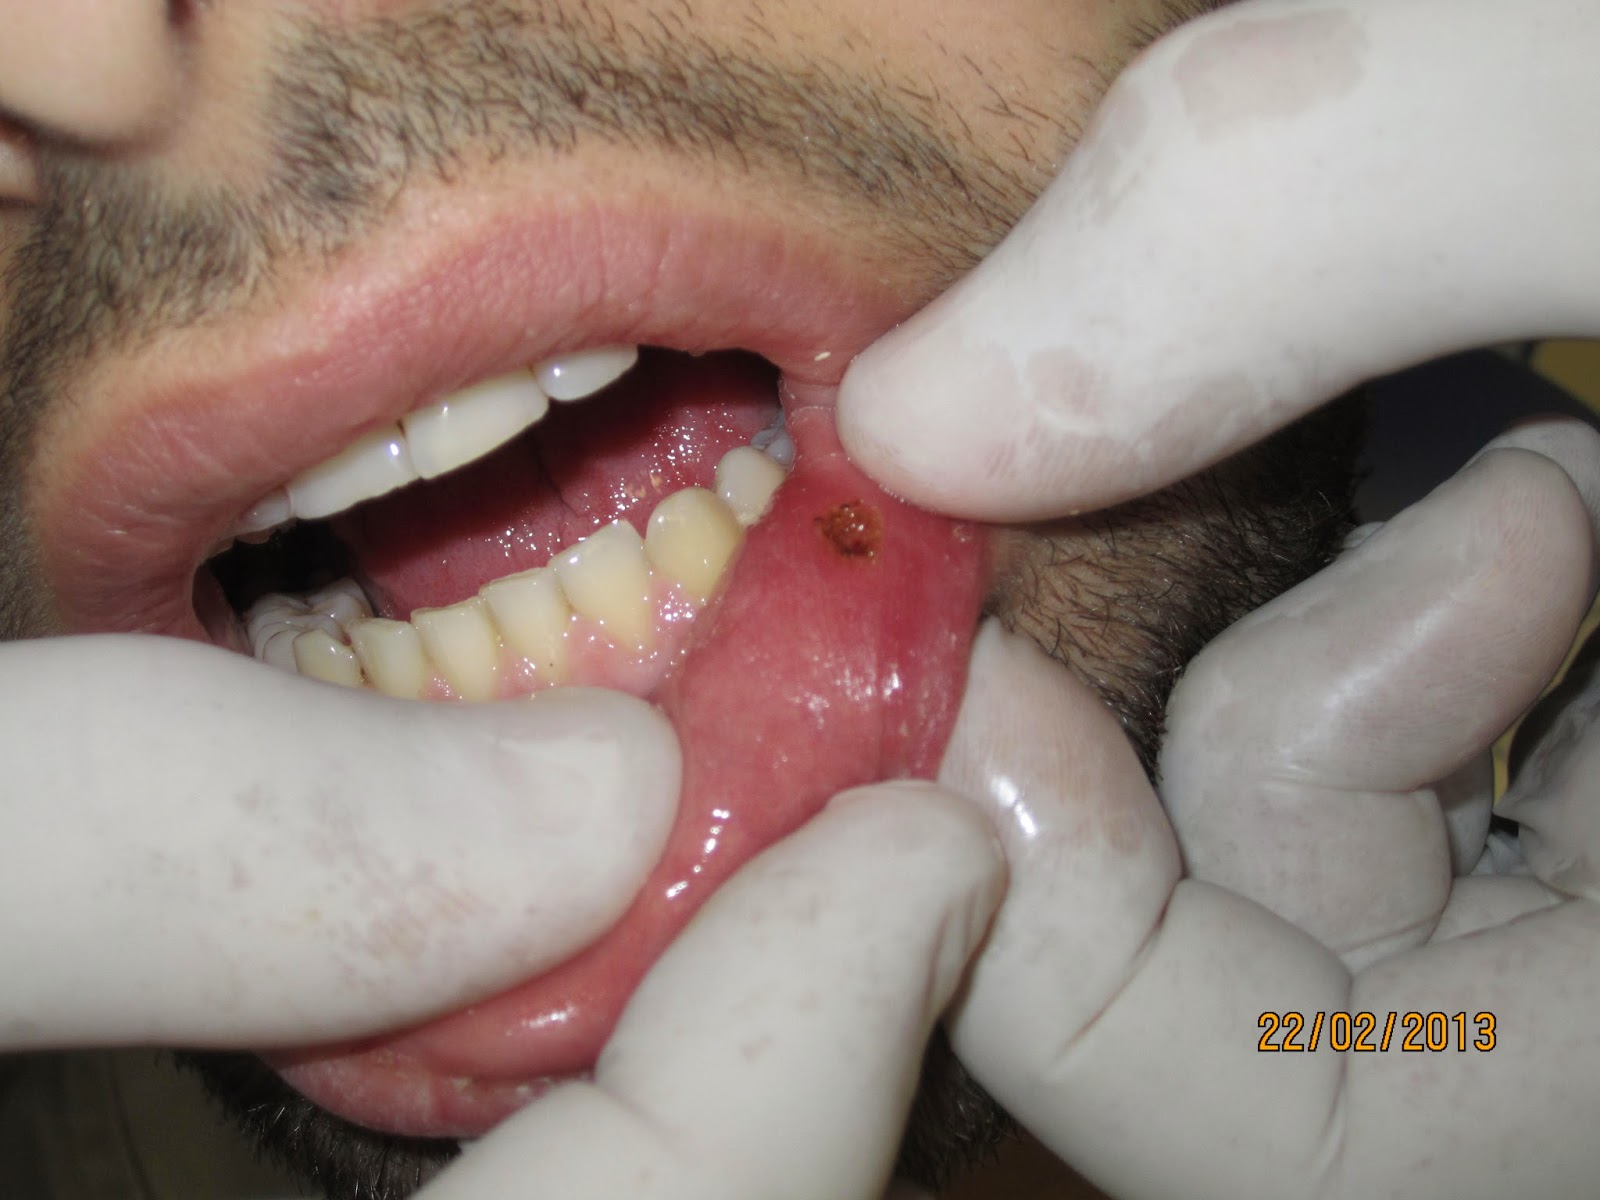 Aphthous Ulcers Treatment with Diode Laser